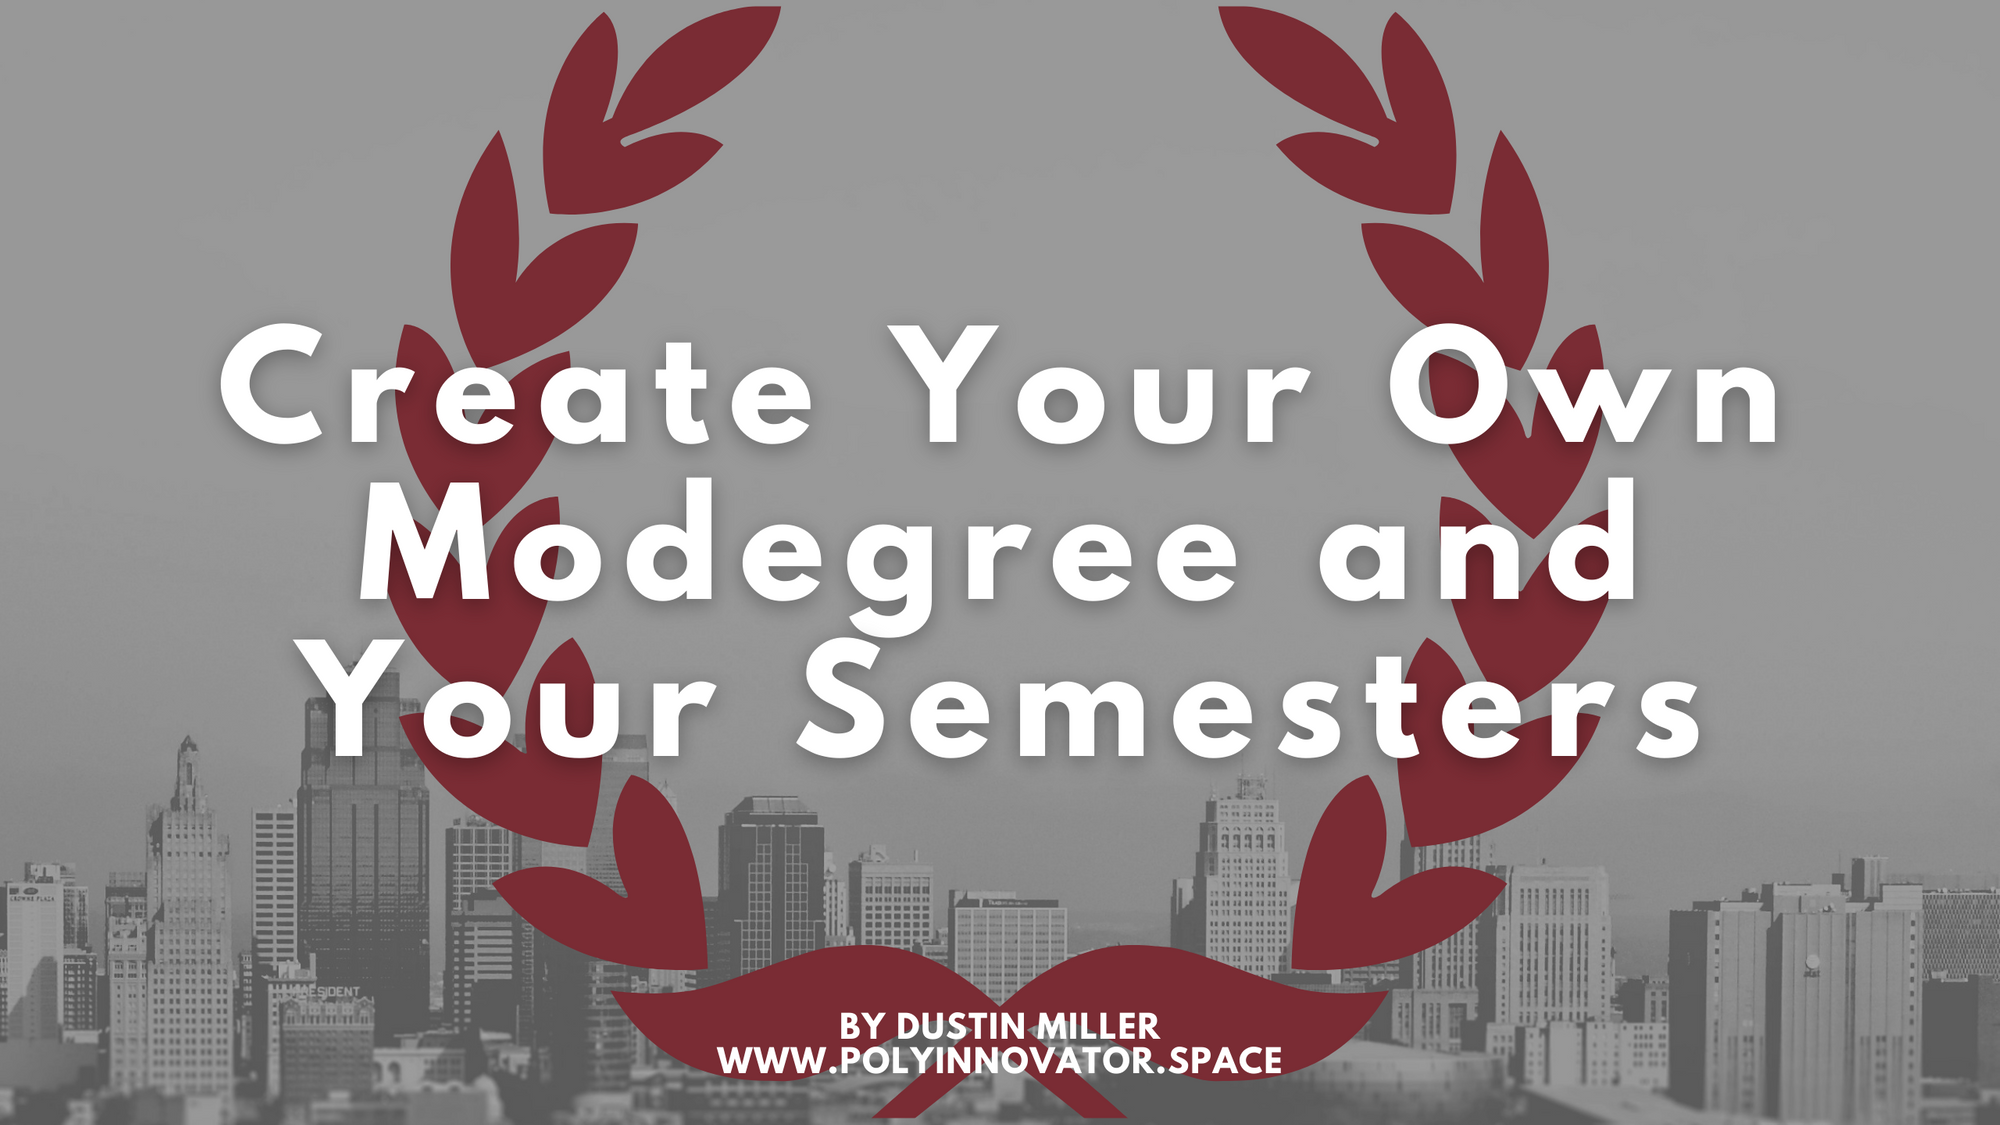 Create Your Own Modegree and Your Semesters